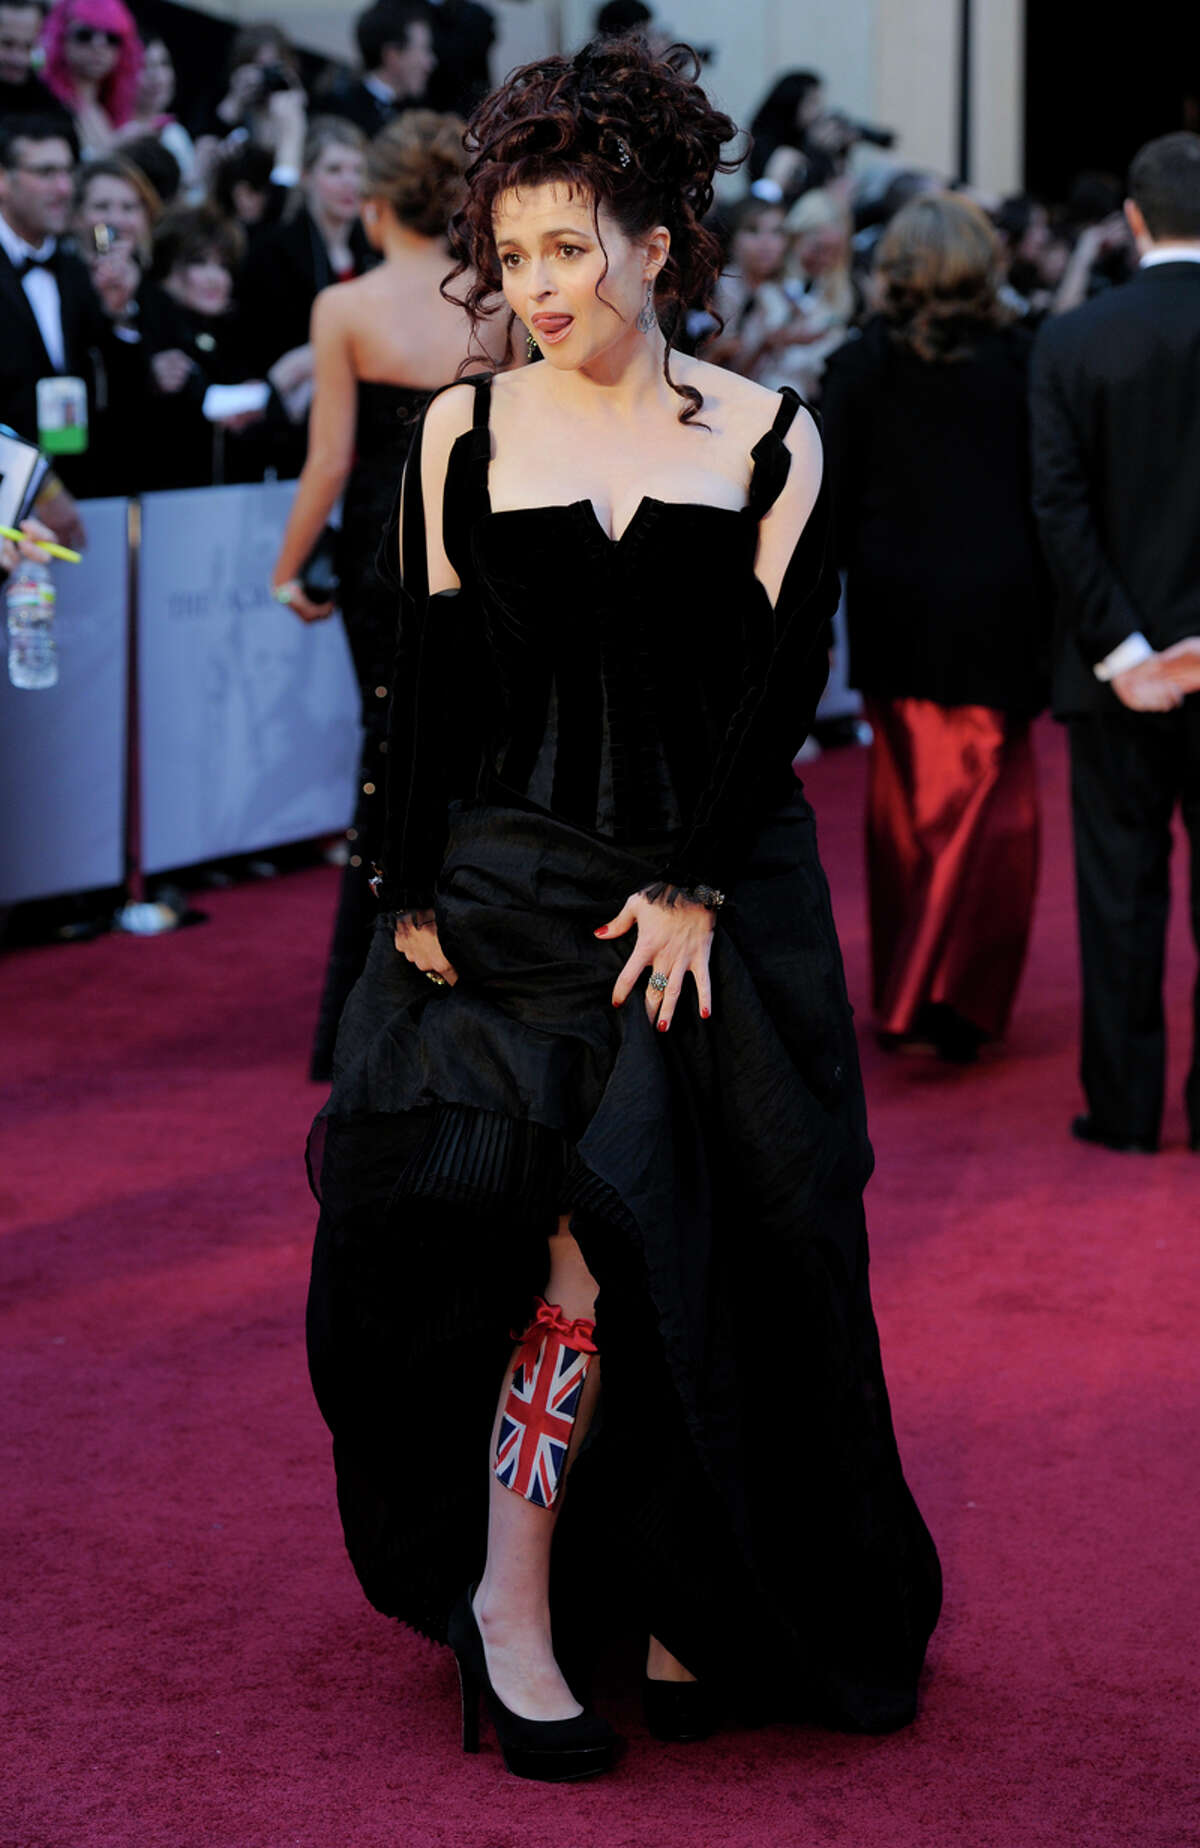 Helena Bonham-Carter. We had a cat do that to our sleeves once, too. Commentary by the Houston Chronicle's Kyrie O'Connor of the MeMo blog. Photo by the Associated Press.